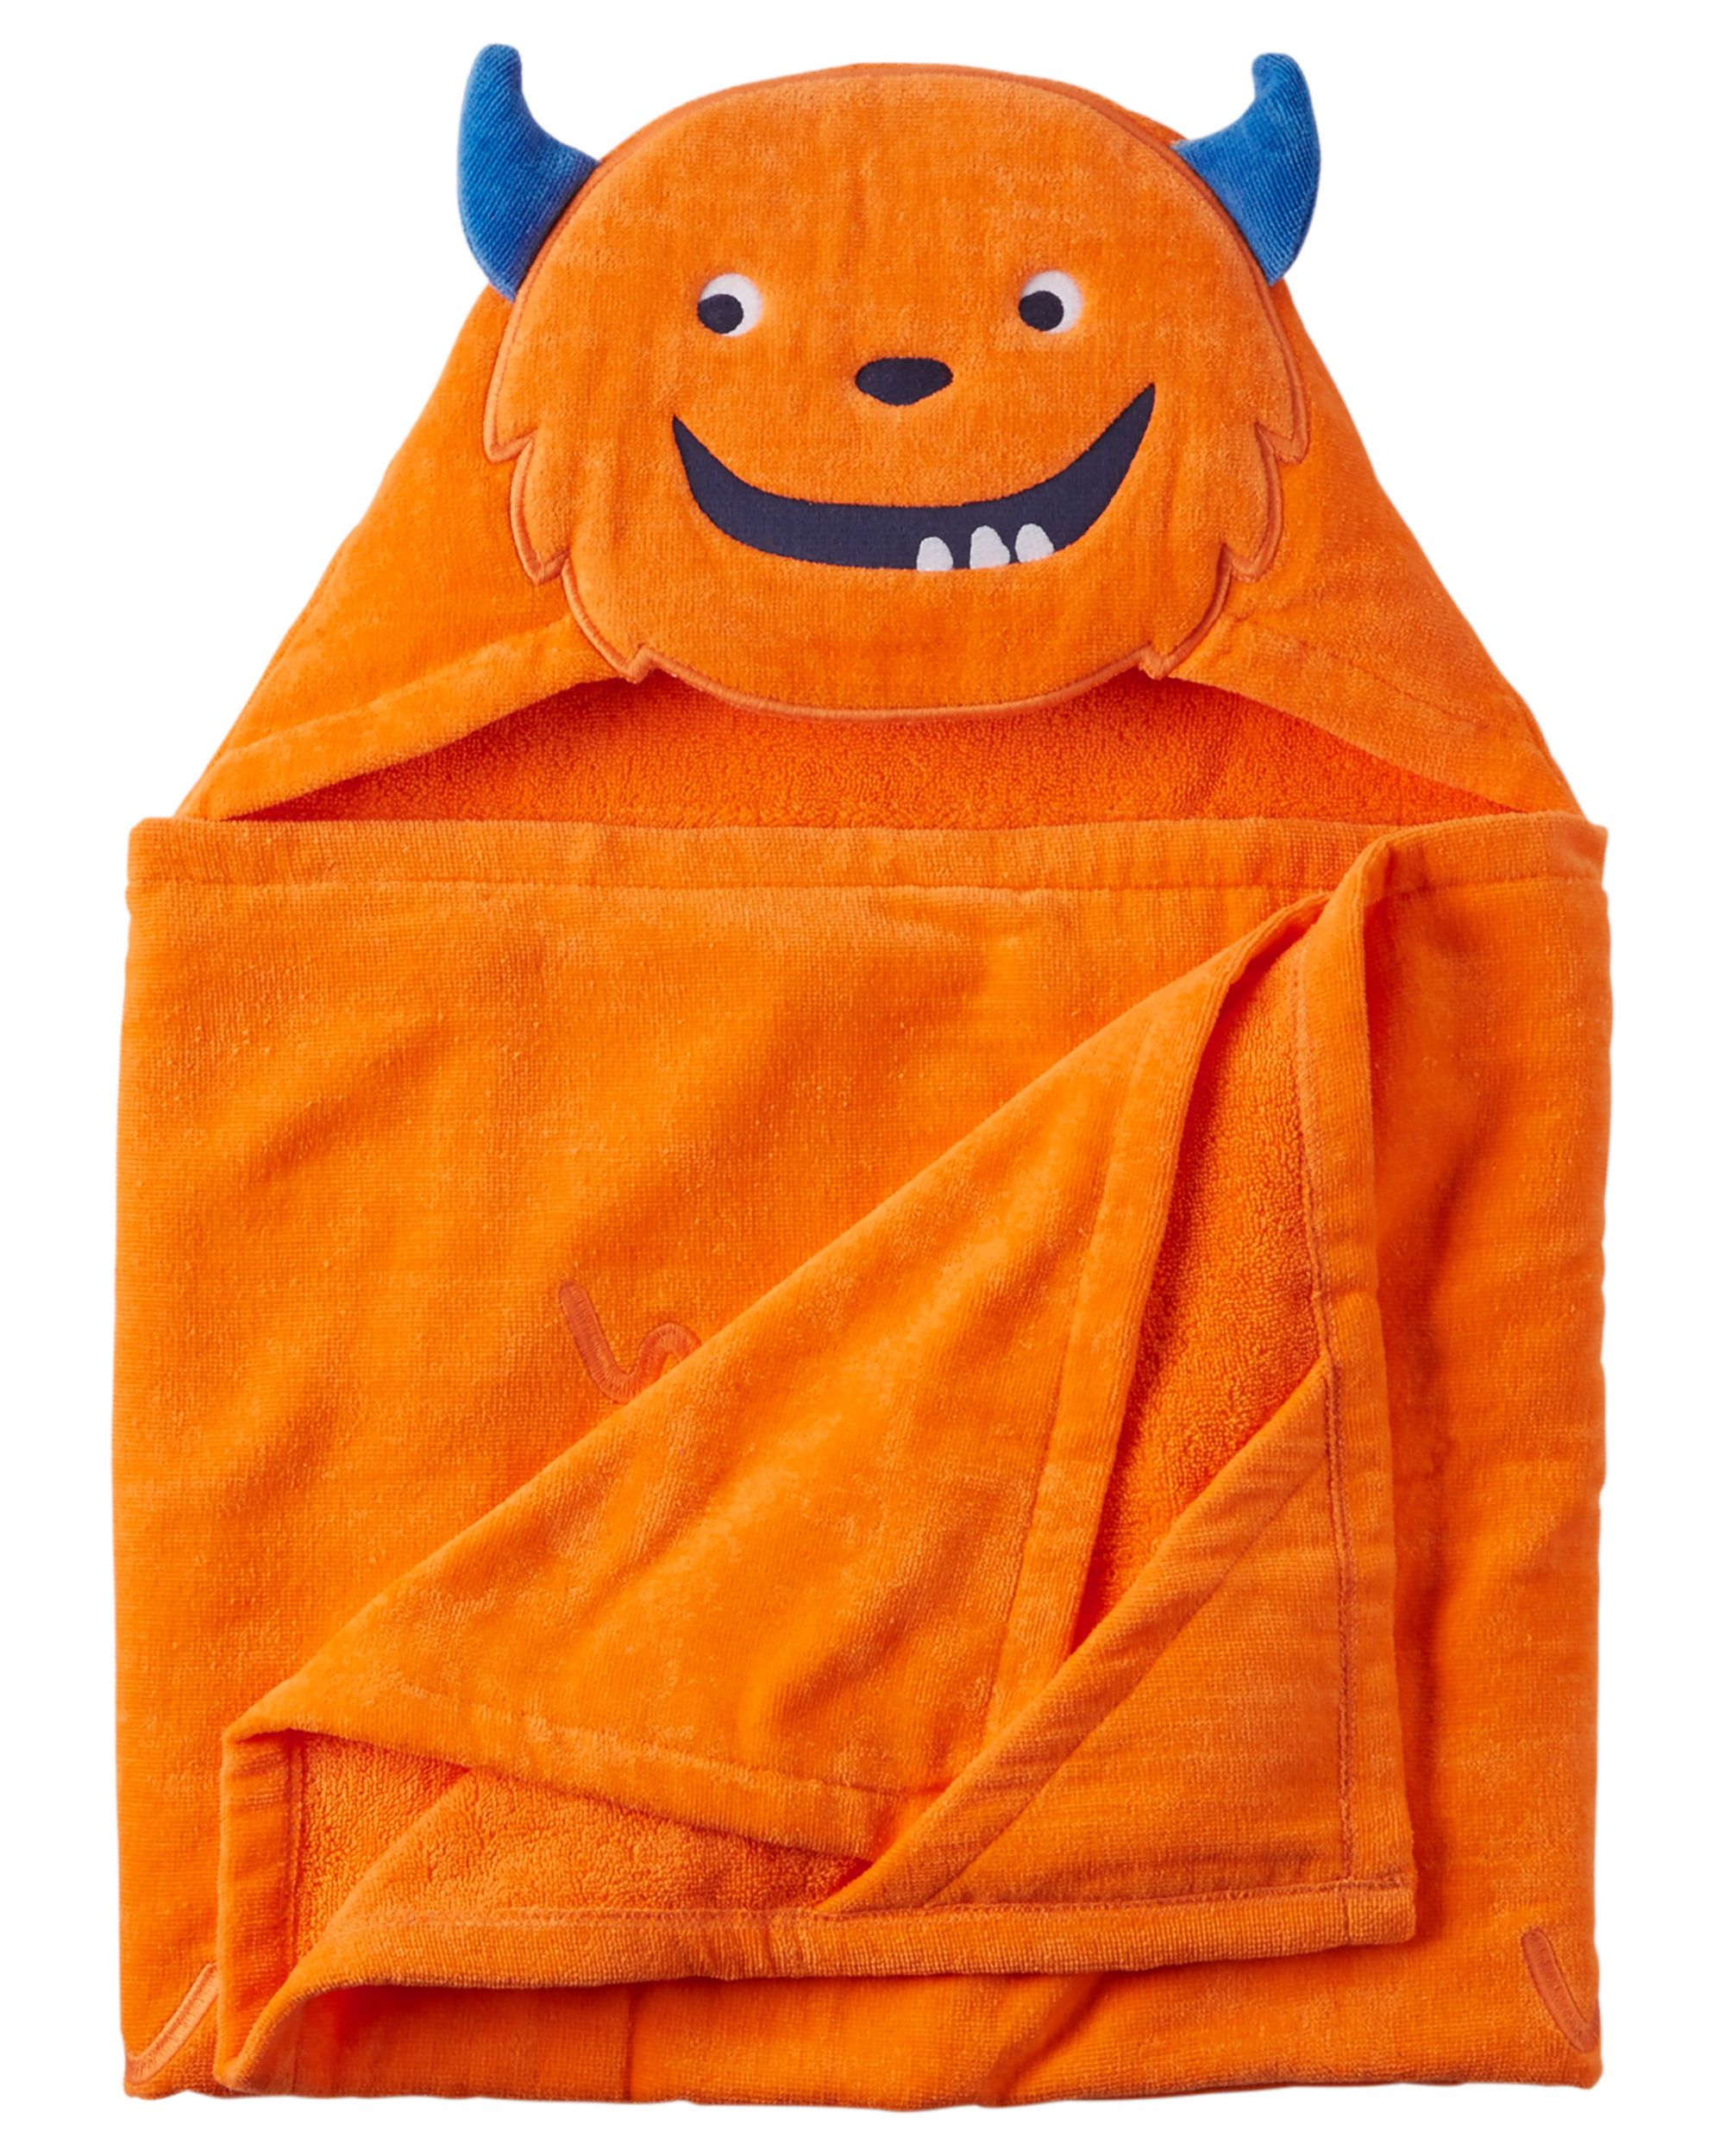 Monster Hooded Towel Carters Com Baby Boy Accessories Hooded